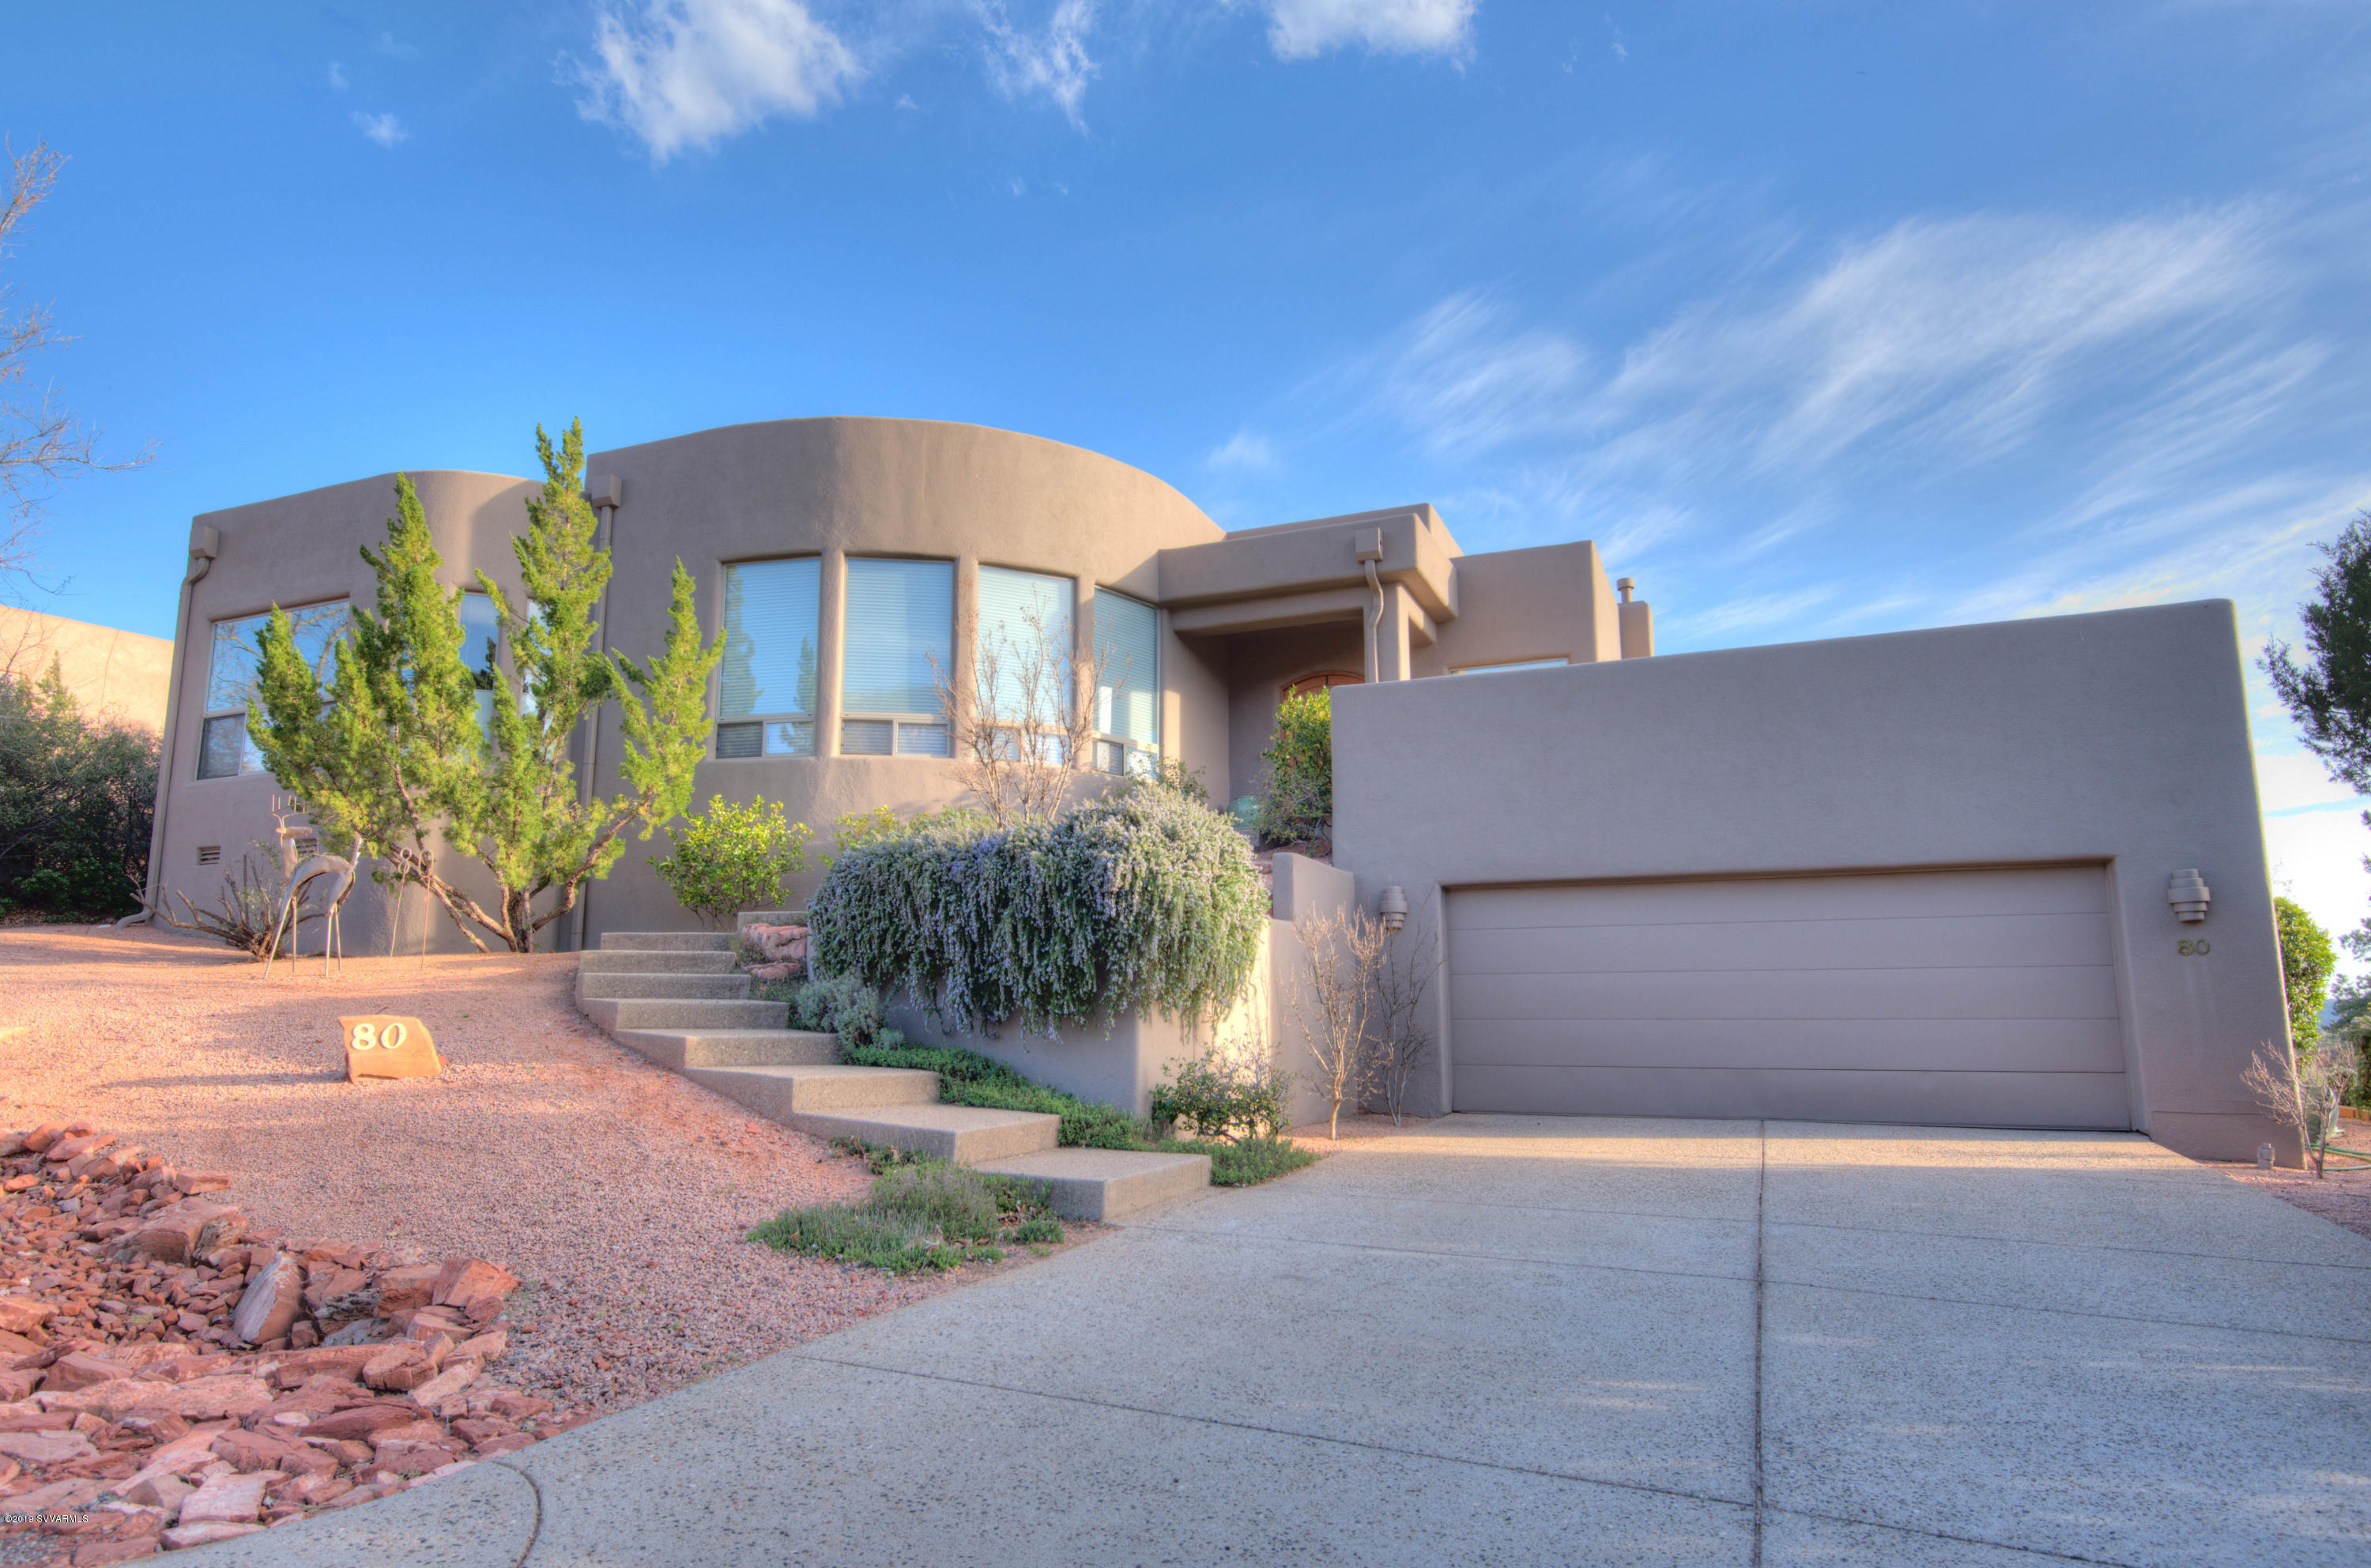 80 Whitetail Lane Sedona, AZ 86336